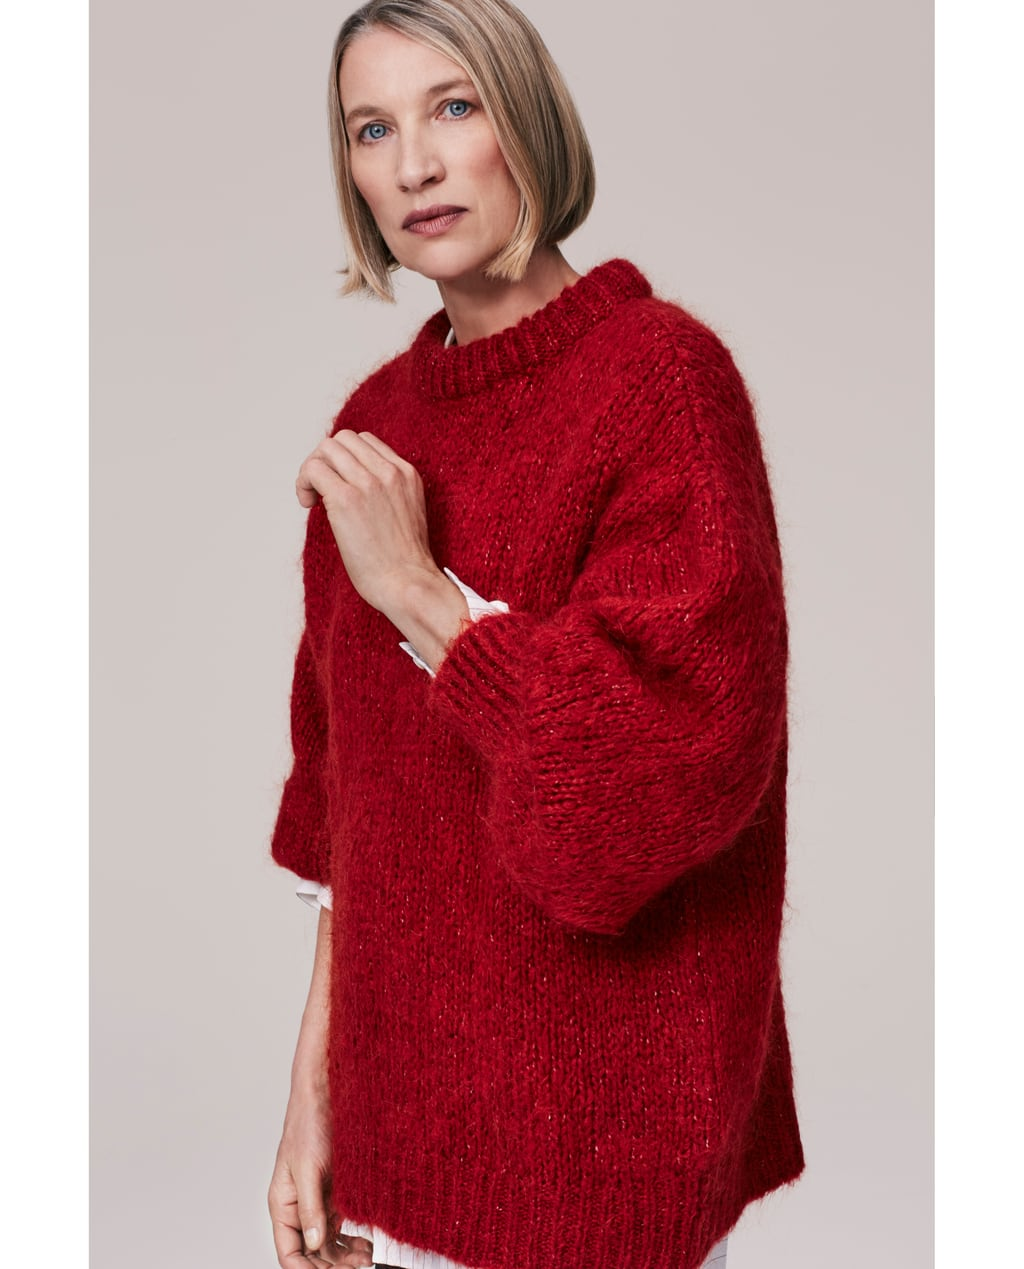 MOHAIR SWEATER WITH PUFFY SLEEVES - Sweaters-KNITWEAR-WOMAN-SALE ...